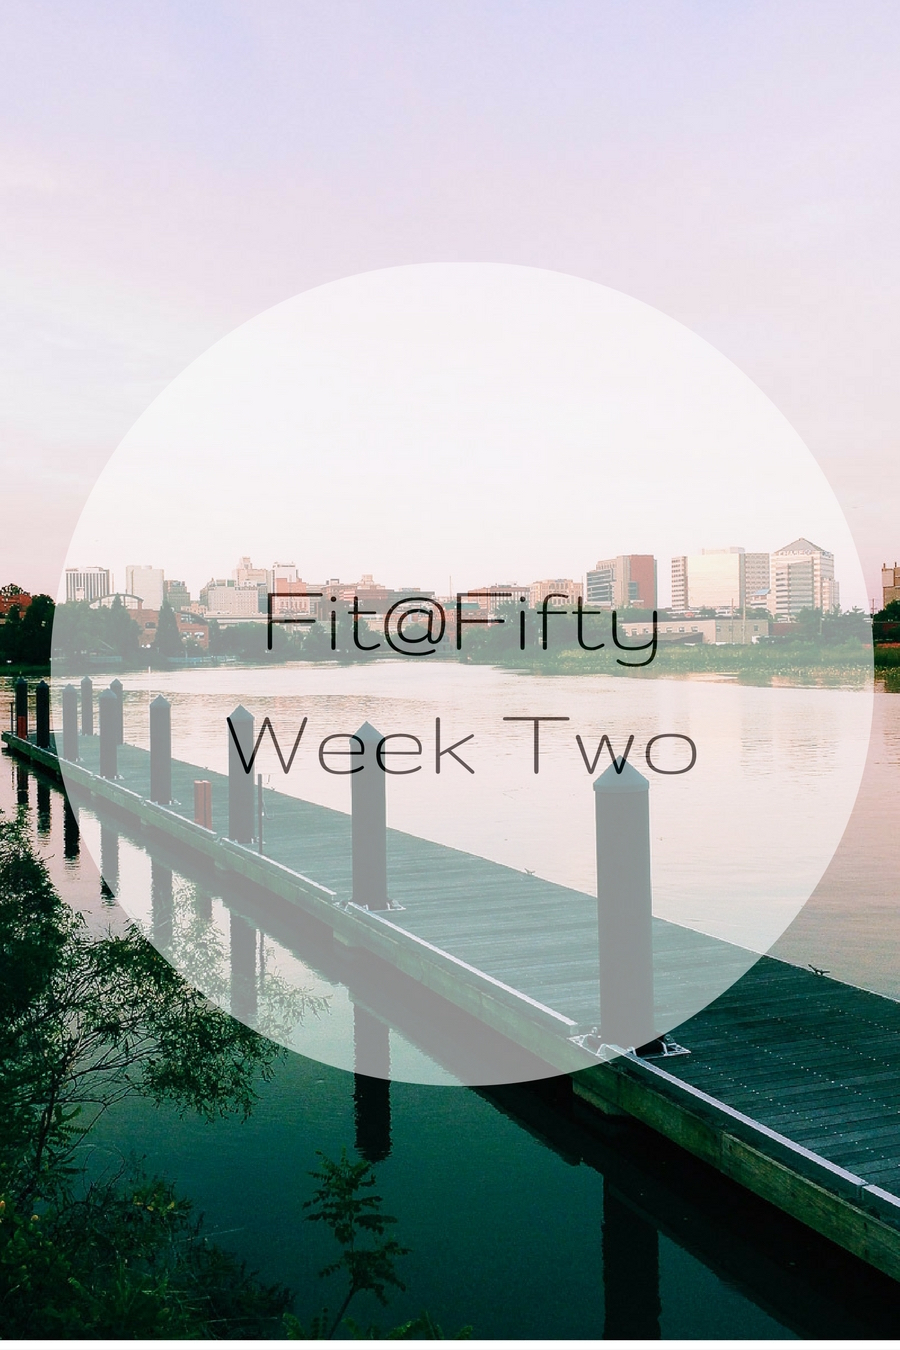 fit@fifty Week Two